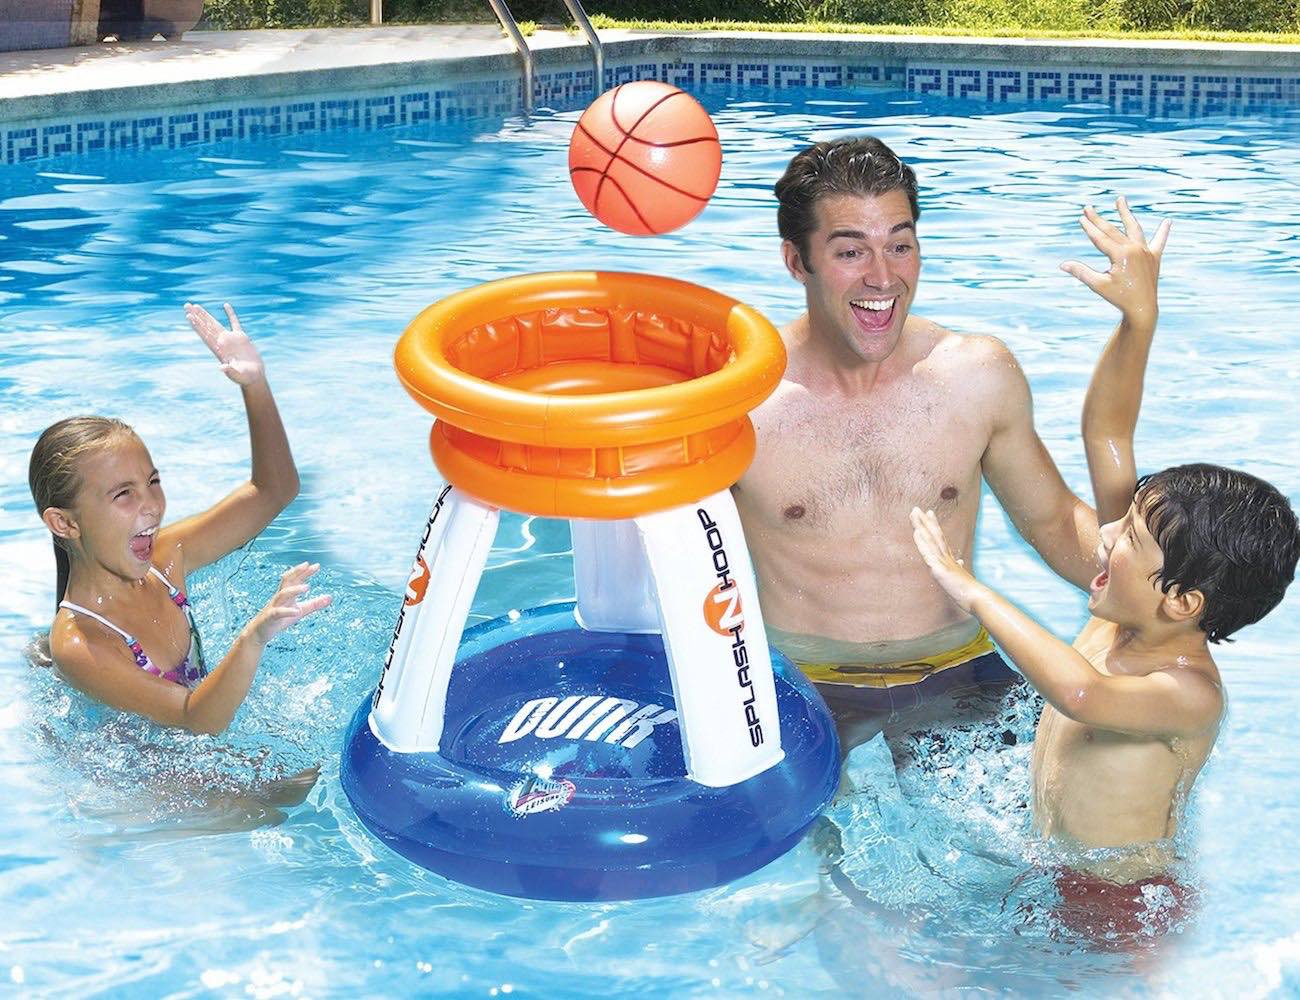 Pool+Basketball+Slam+Dunk+%26%238211%3B+An+Interesting+Pool+Game+For+Families